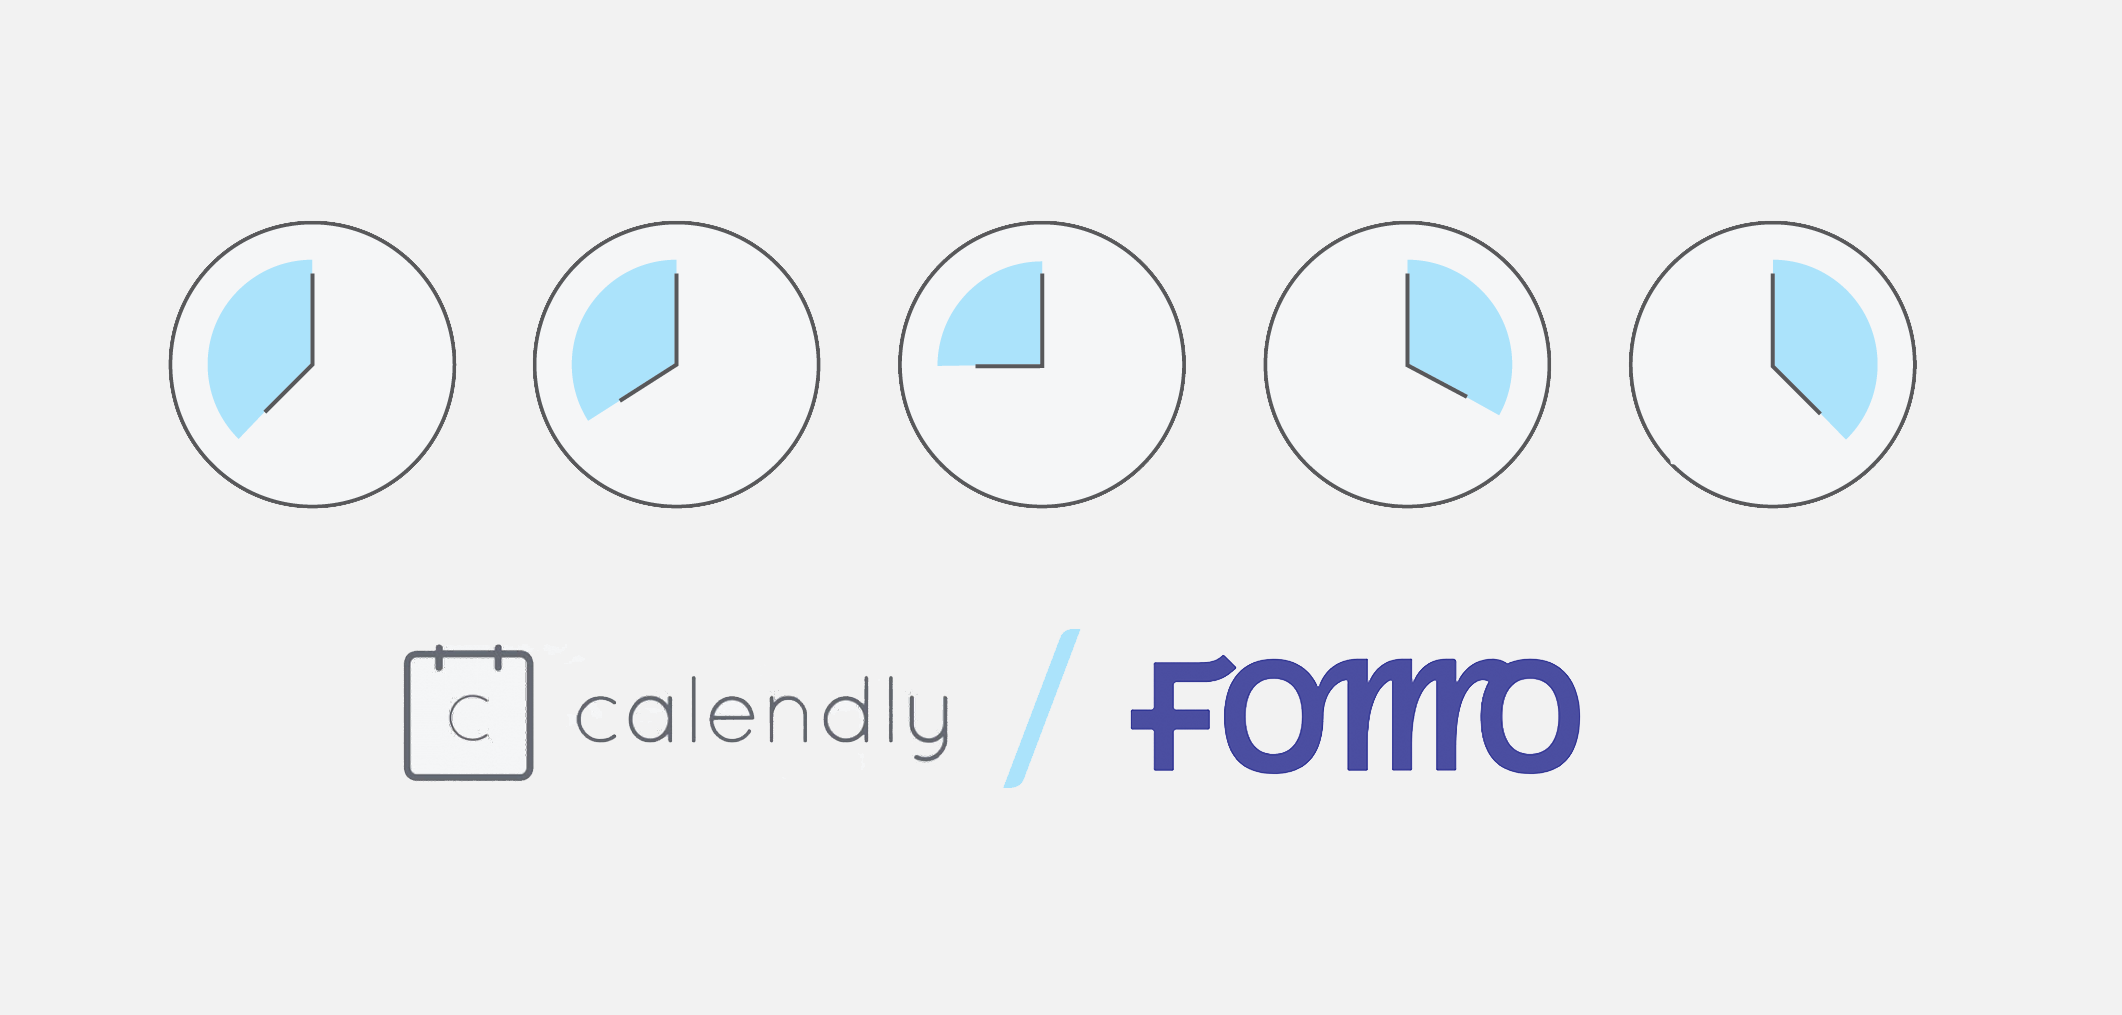 More Calendly Action with Fomo